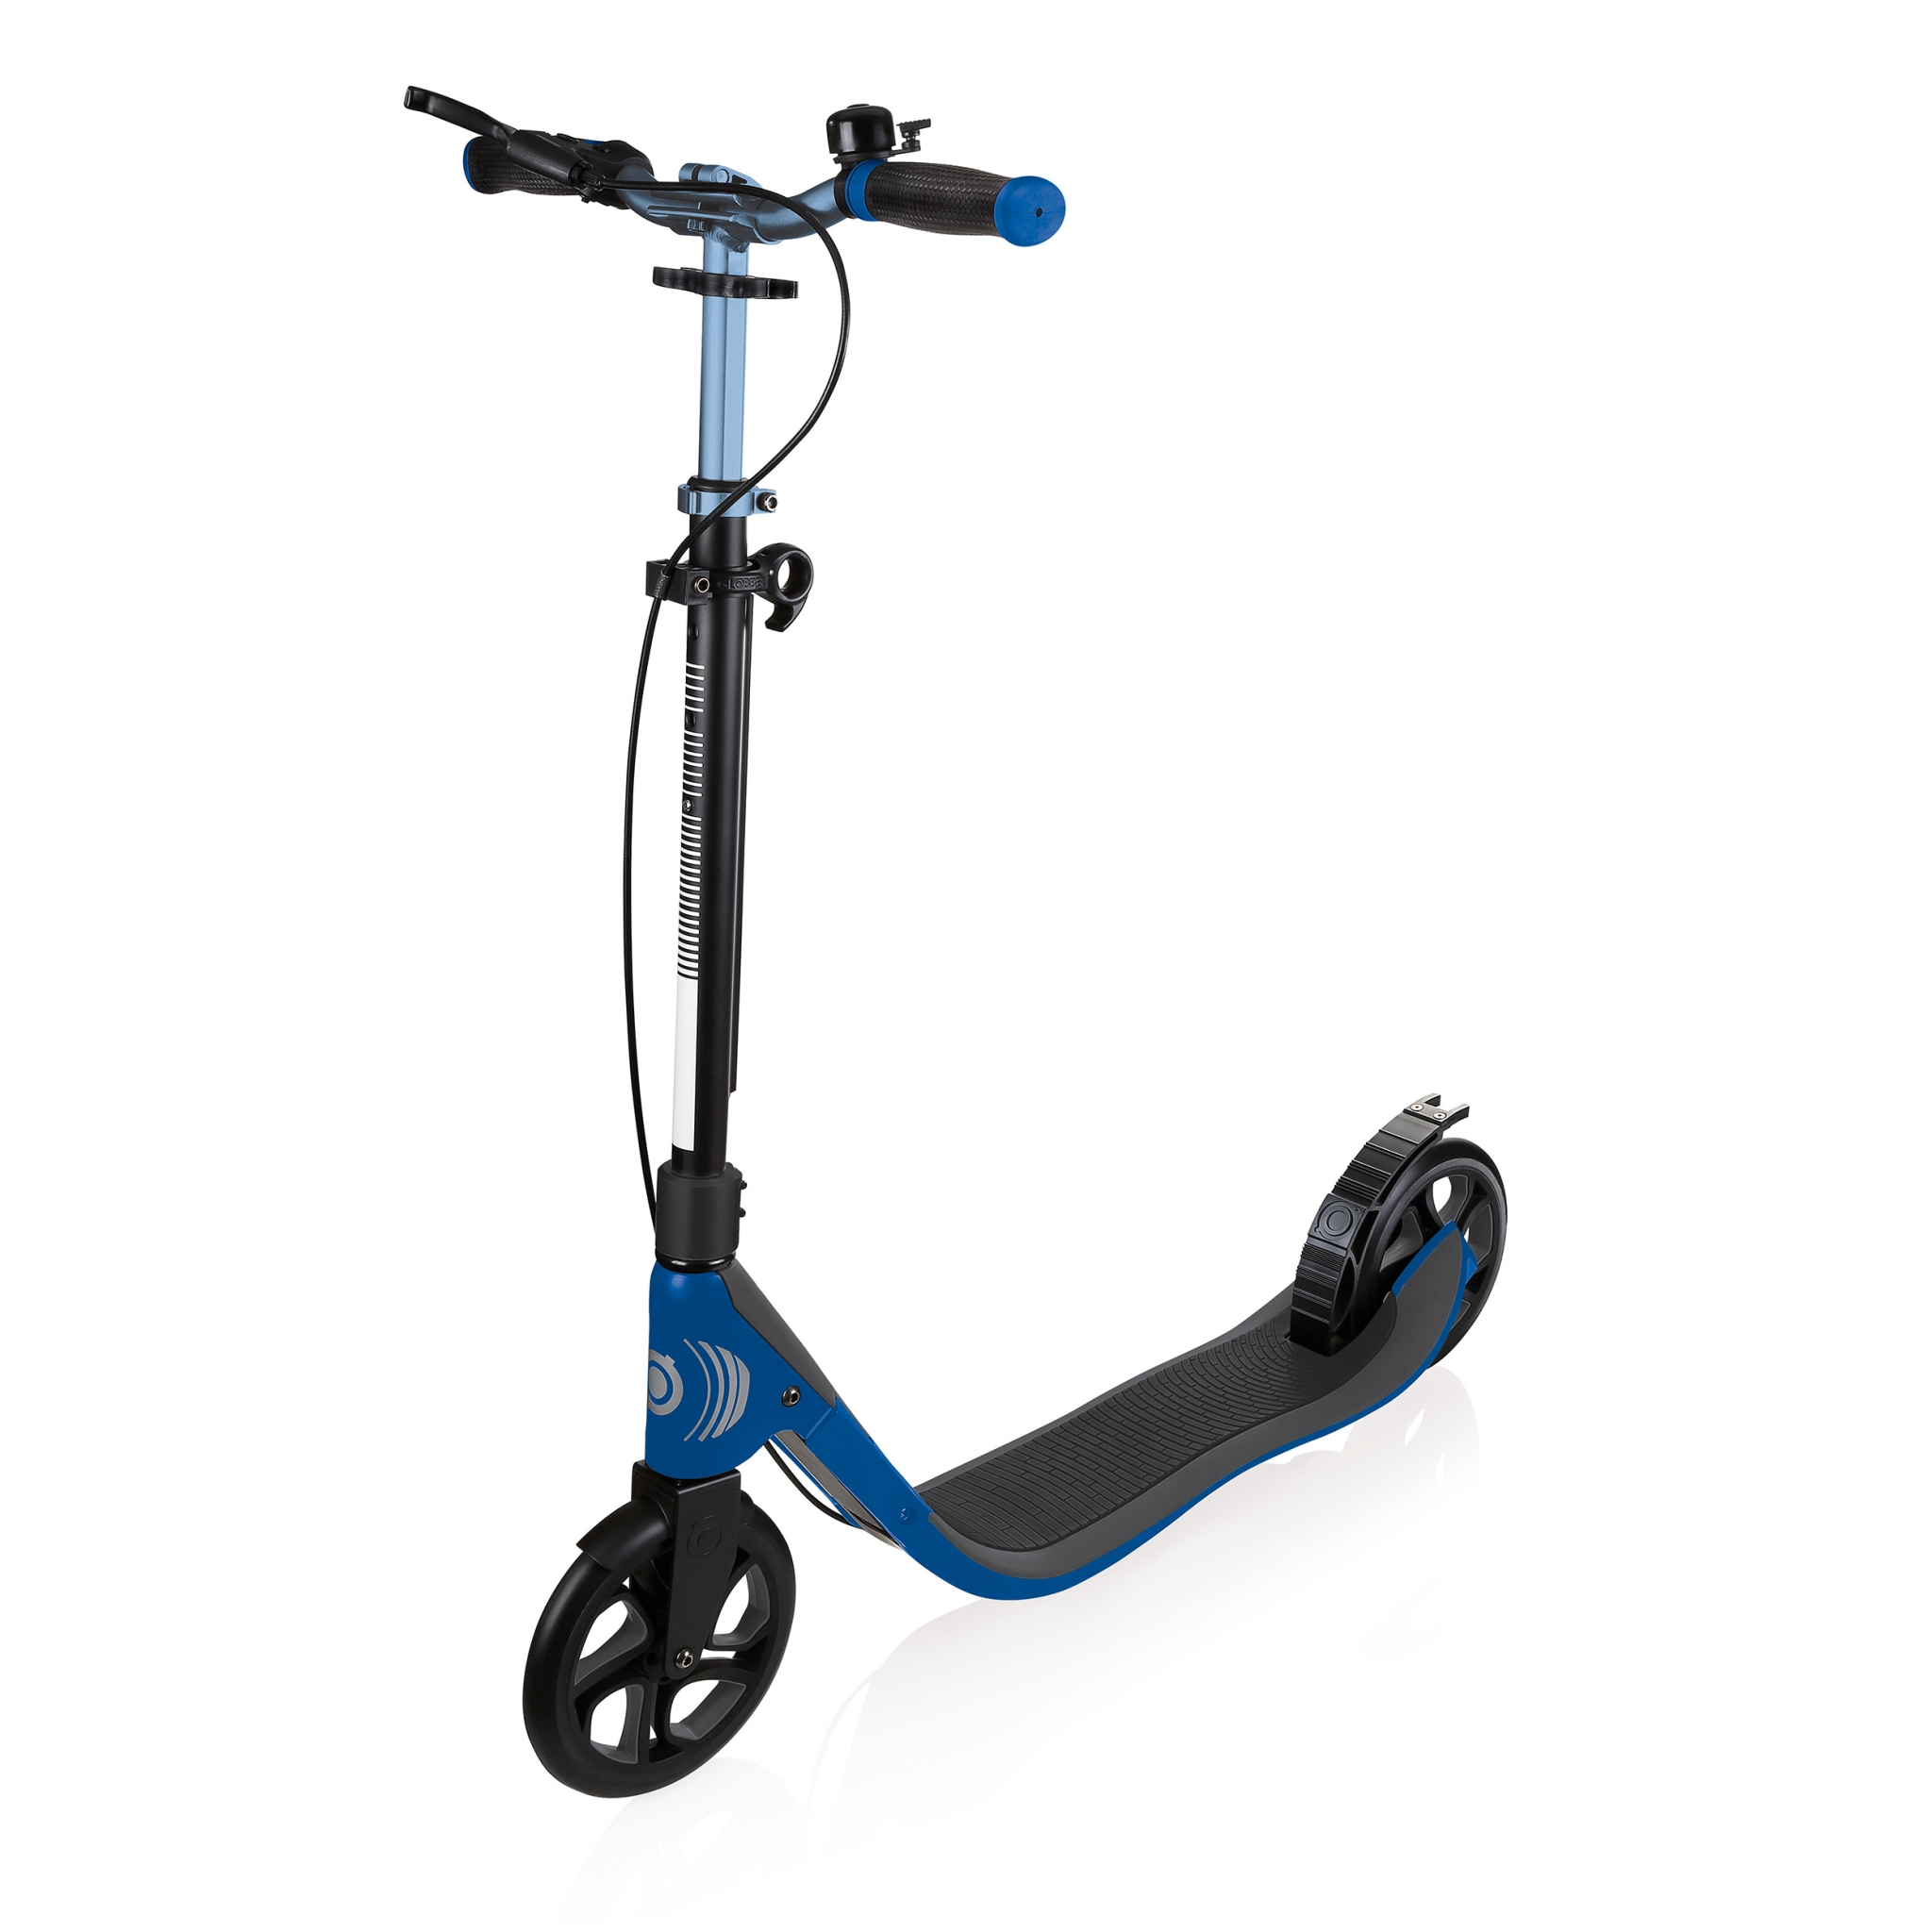 foldable scooter for adults with handbrake - Globber ONE NL 205 DELUXE 0